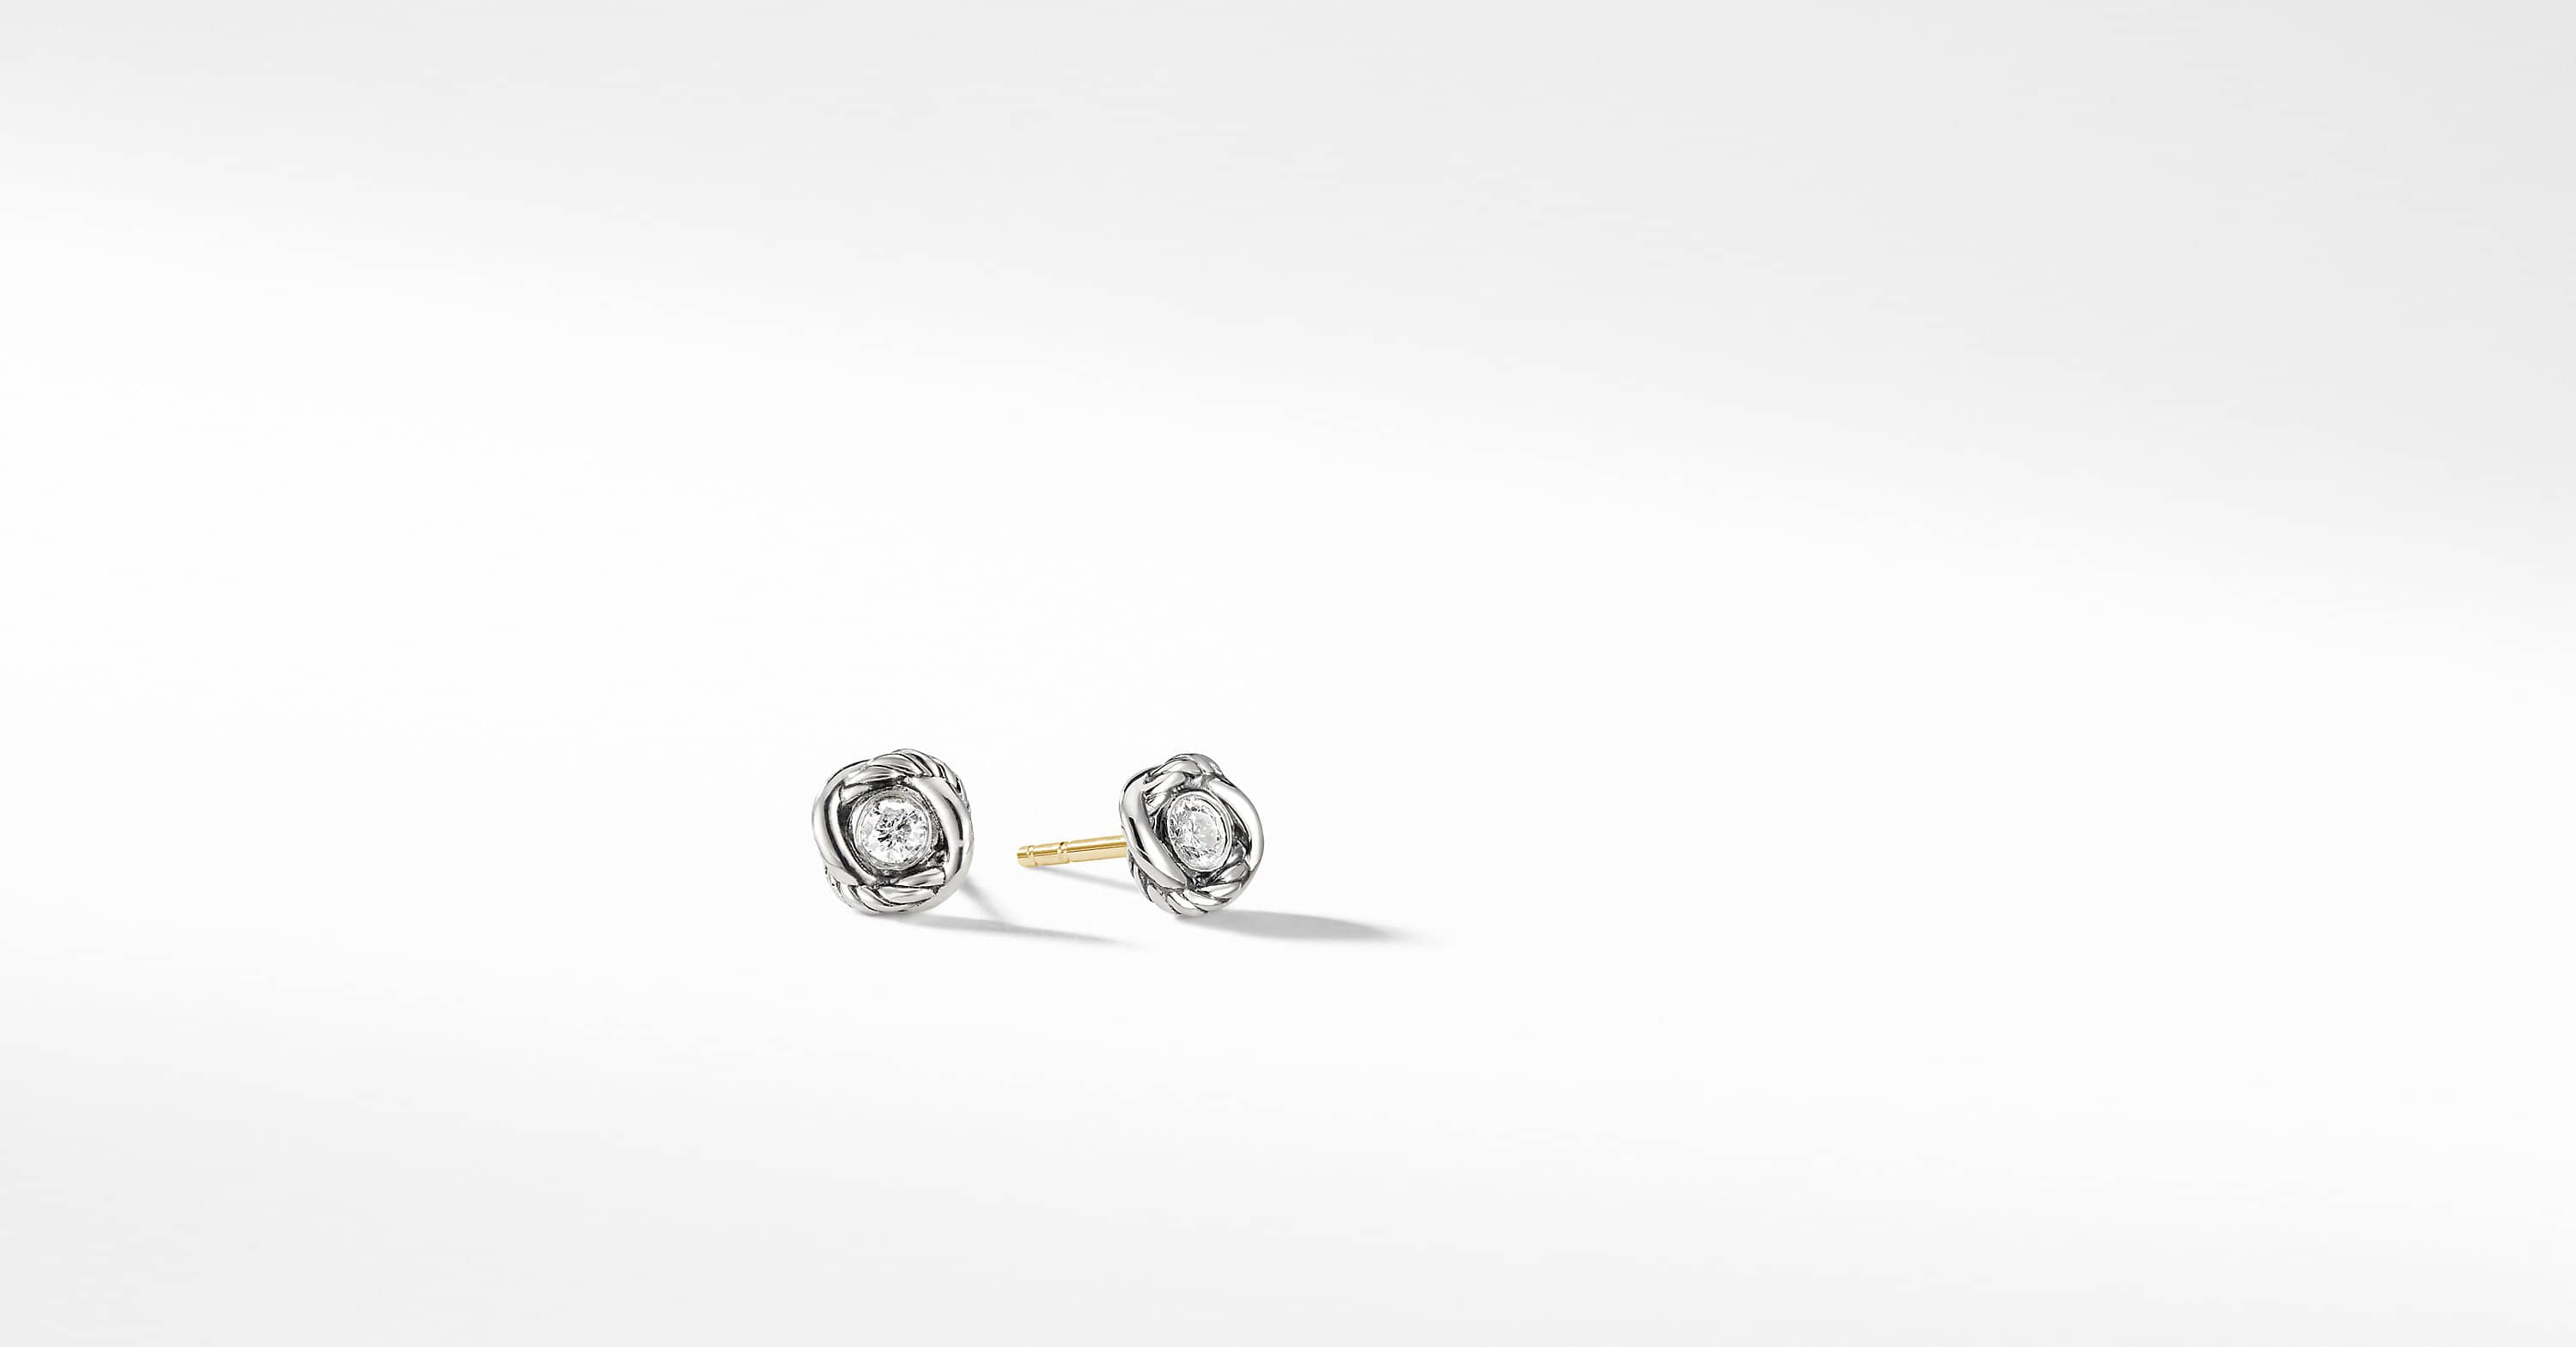 Infinity Earrings with Diamonds